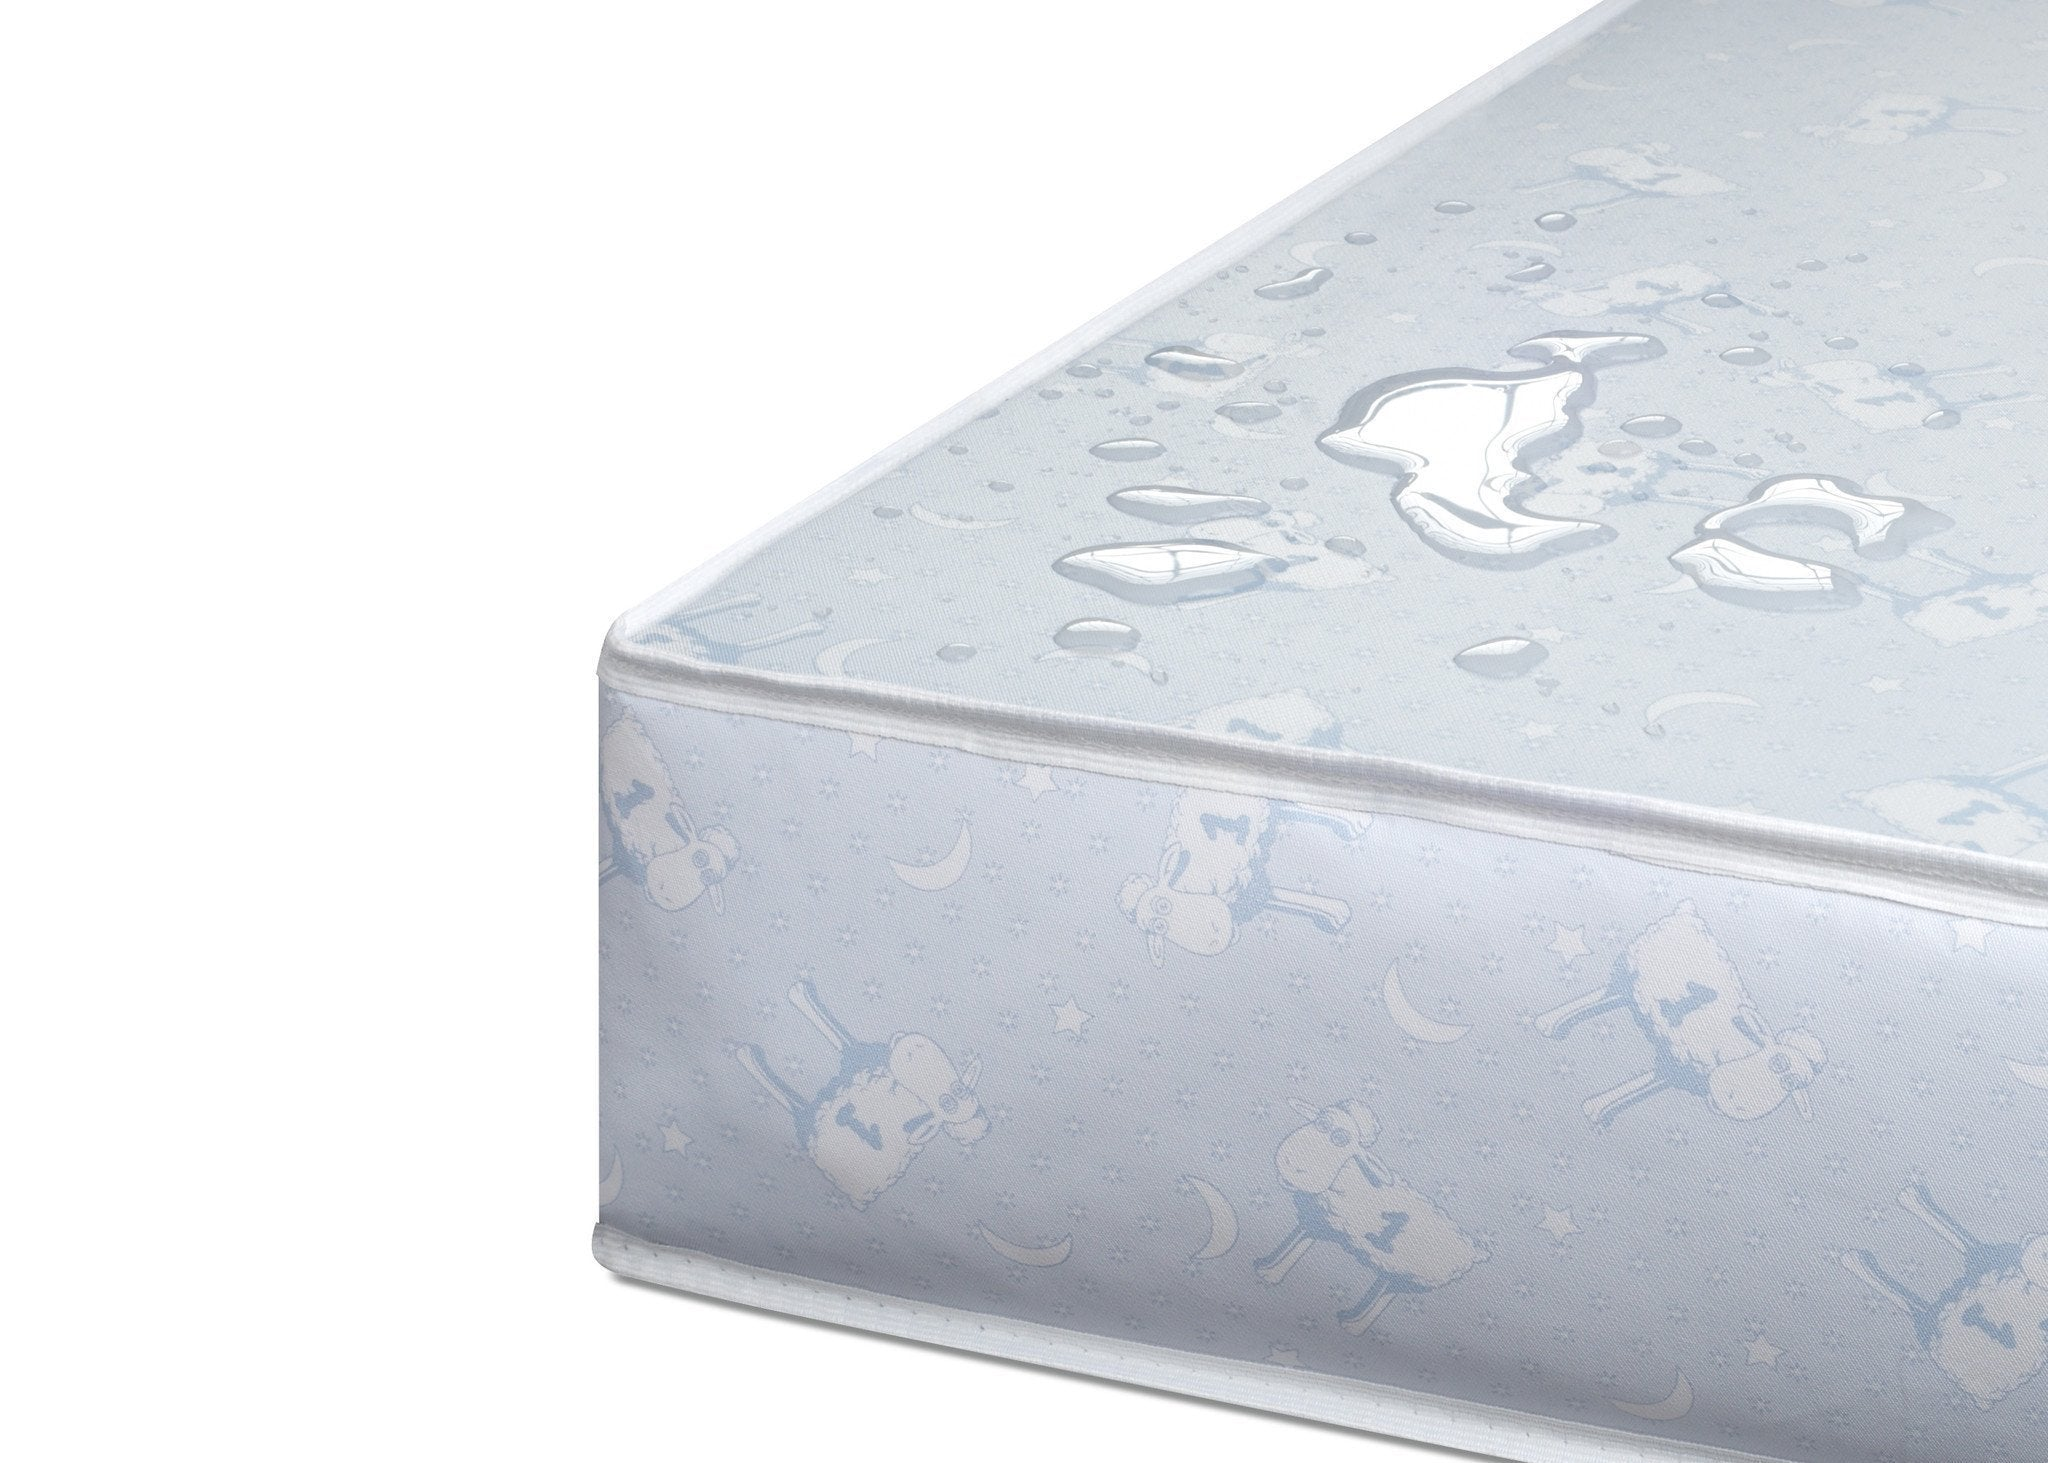 Serta Tranquility Extra Firm Crib & Toddler Mattress Detail a4a No Color (NO)